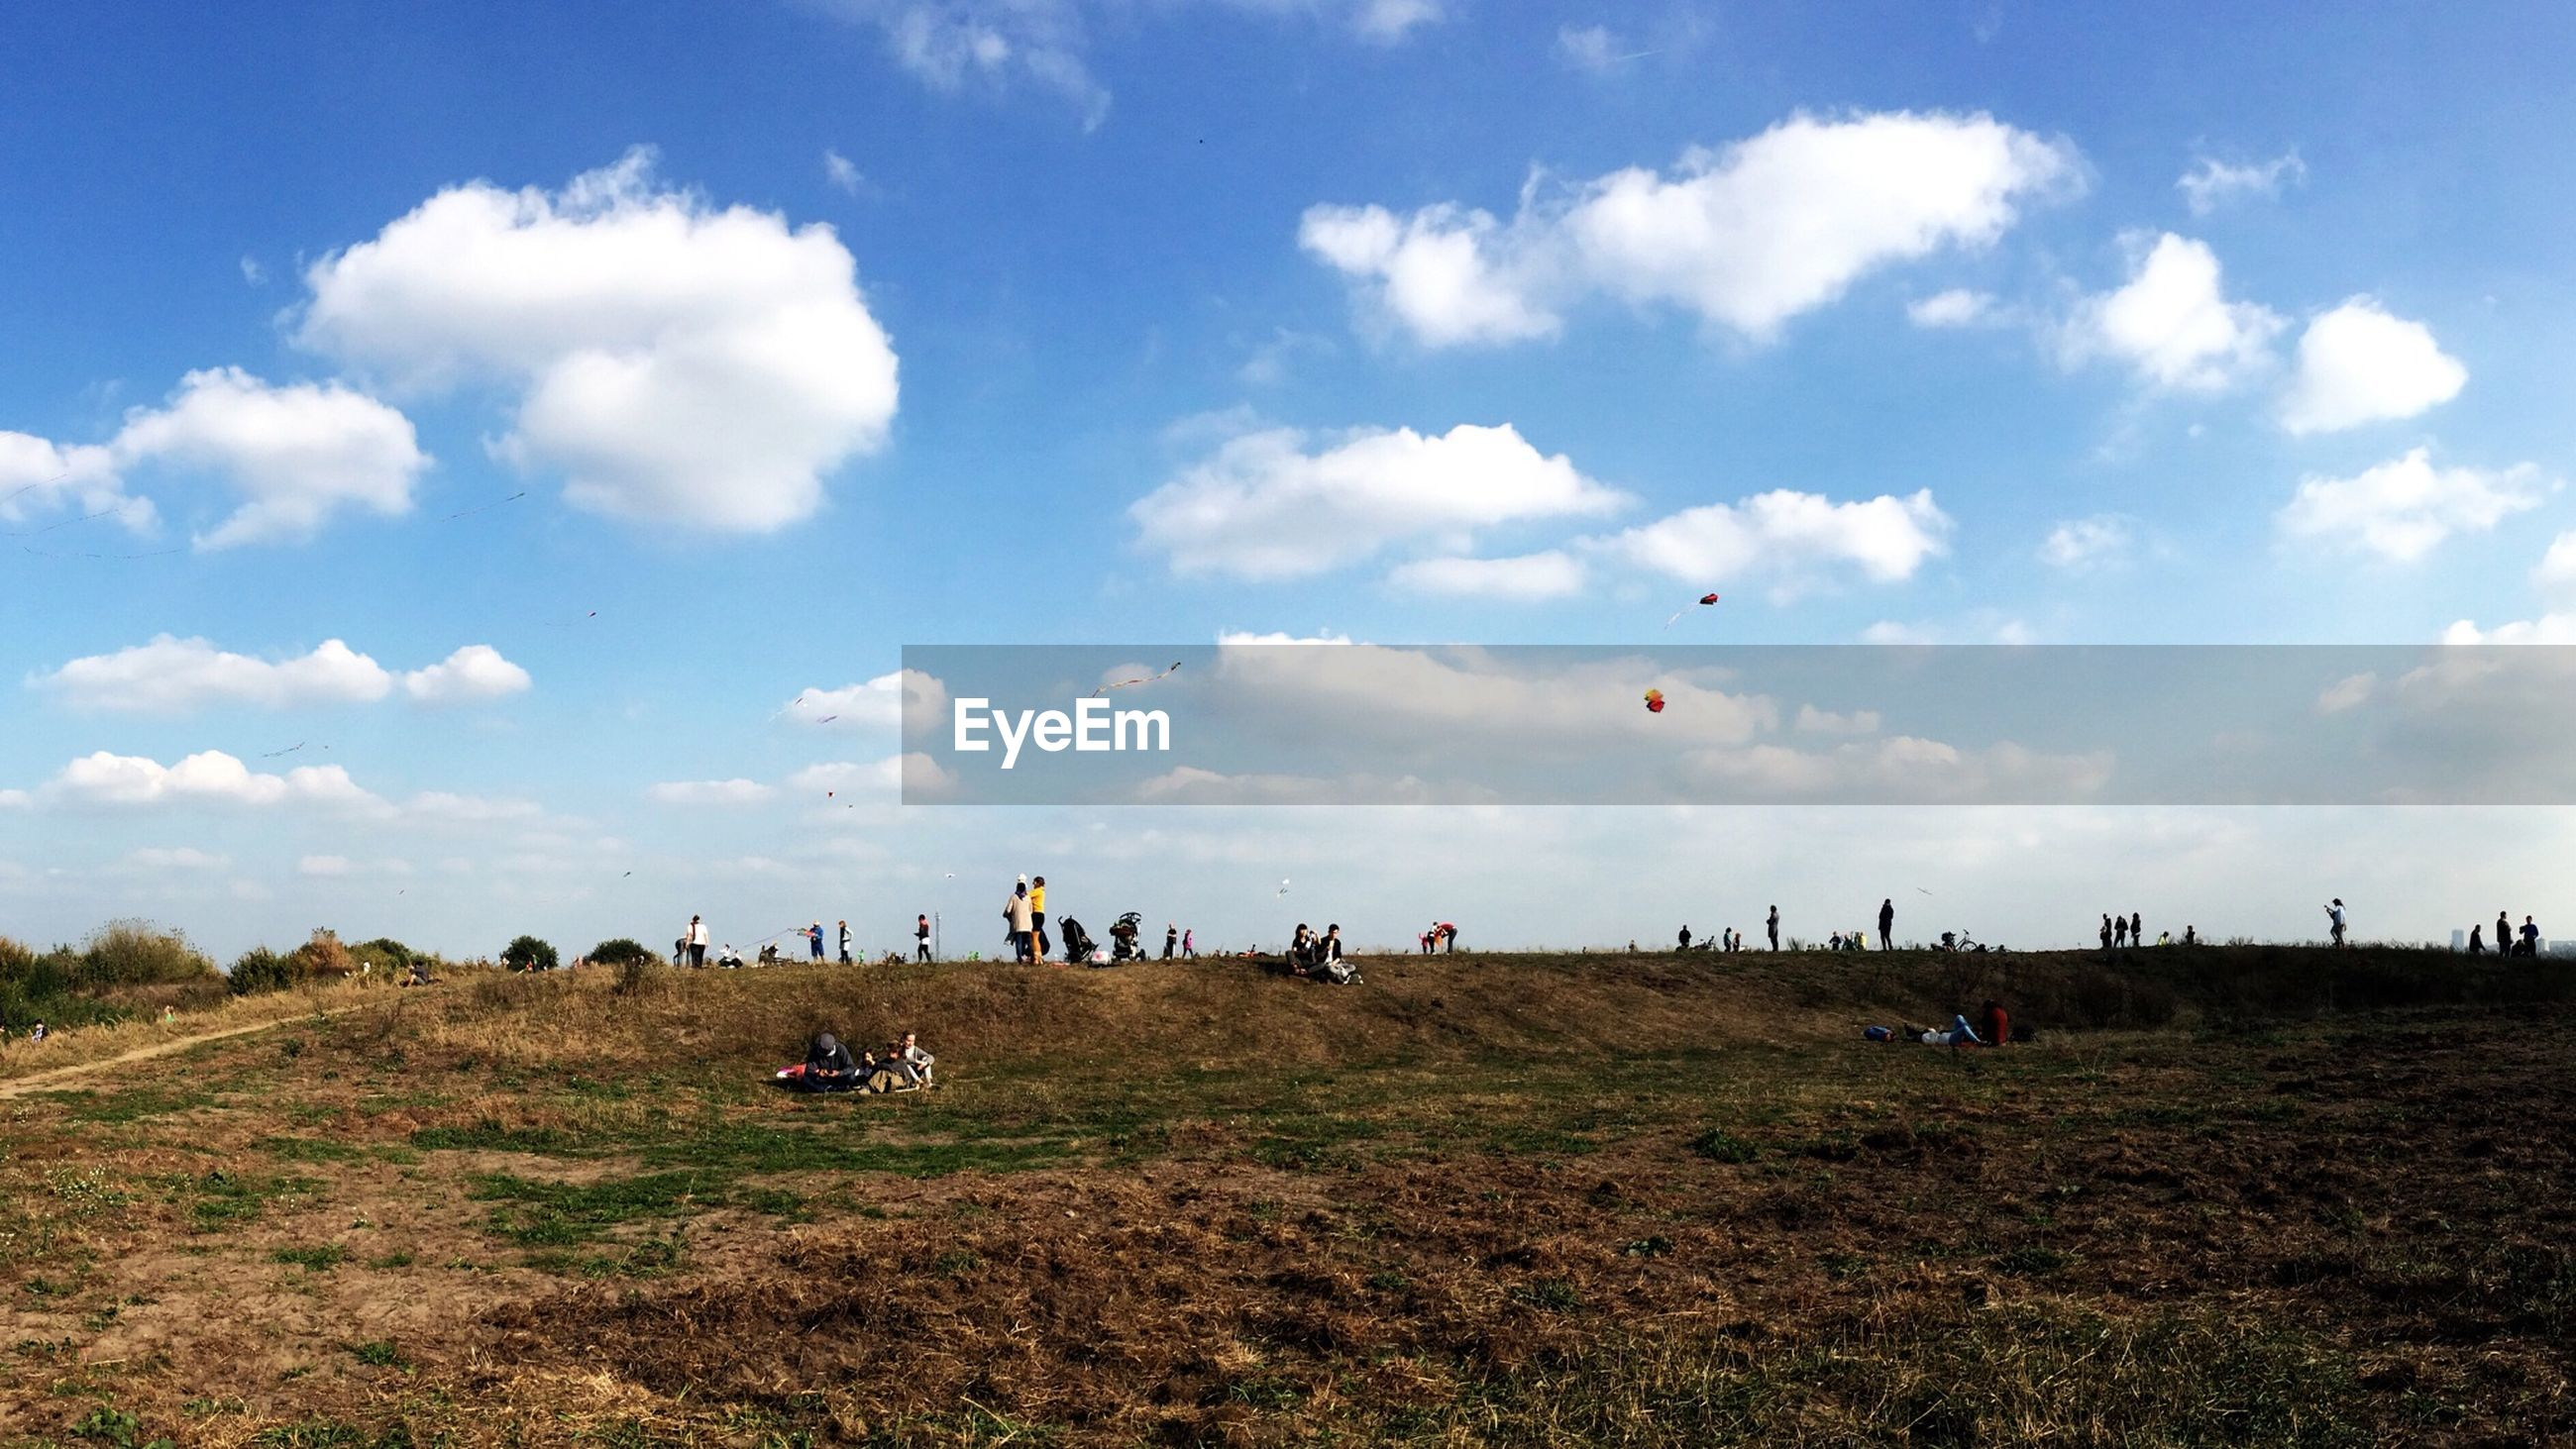 People flying kites on field against cloudy sky